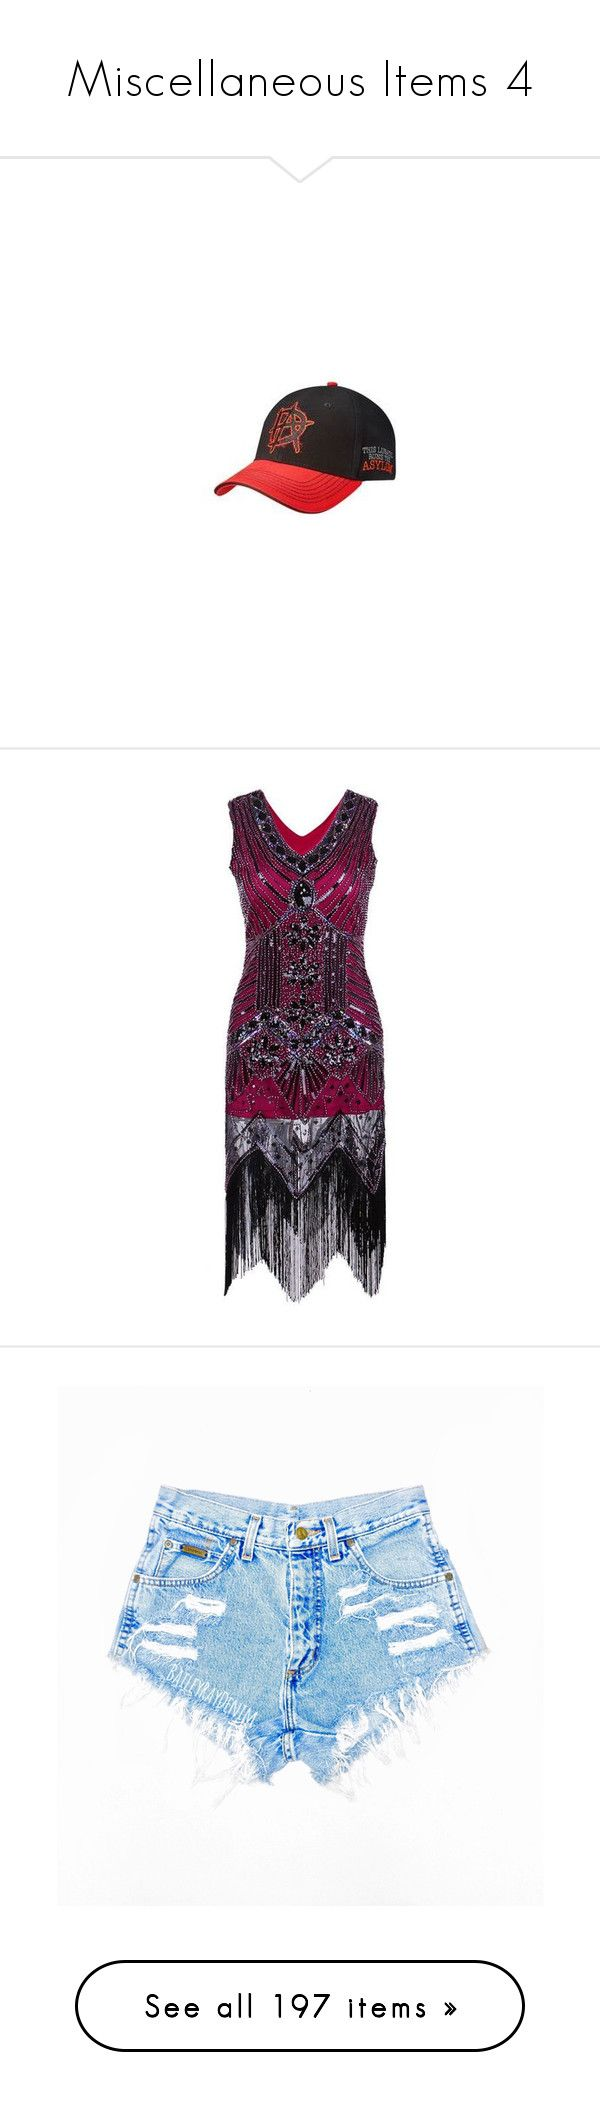 """Miscellaneous Items 4"" by dani-loves-wwe-music ❤ liked on Polyvore featuring dresses, beaded fringe dress, bodycon dress, sequin bodycon dress, body con dresses, purple bodycon dress, shorts, bottoms, short and light blue"